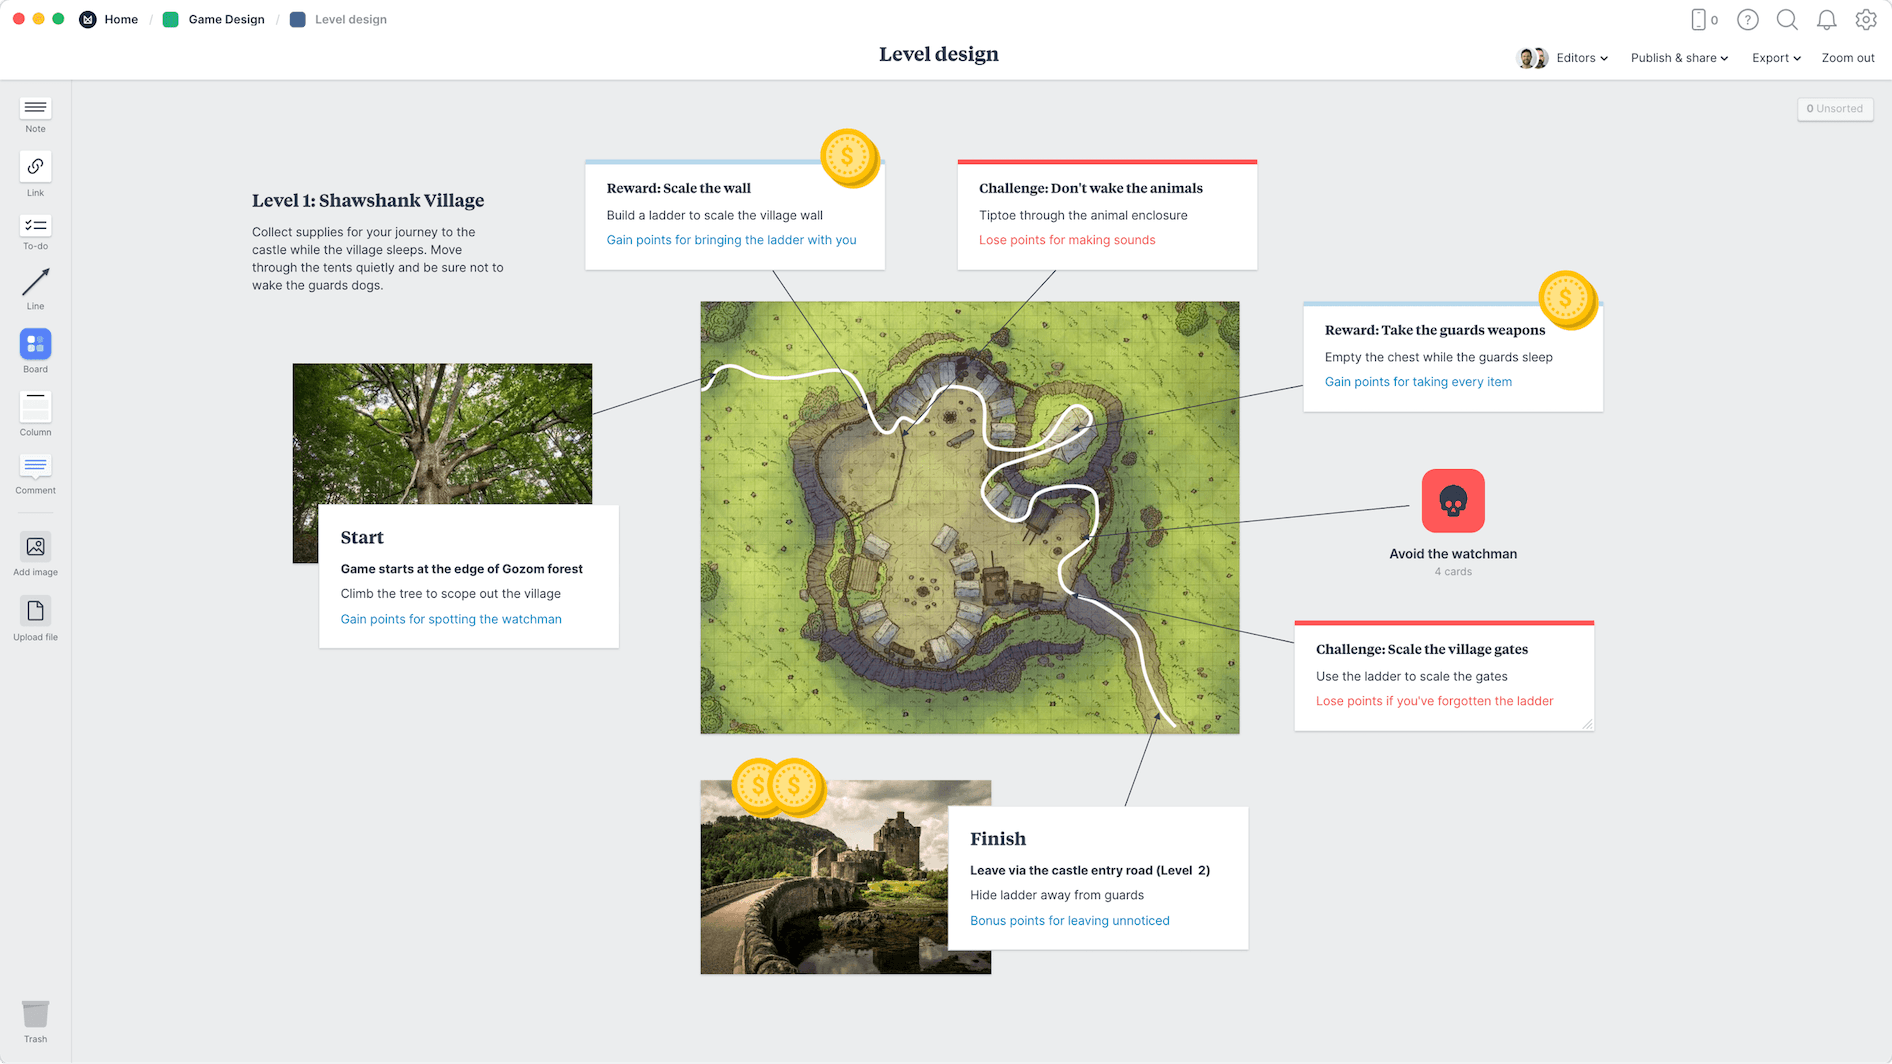 Game Level Design Template, within the Milanote app